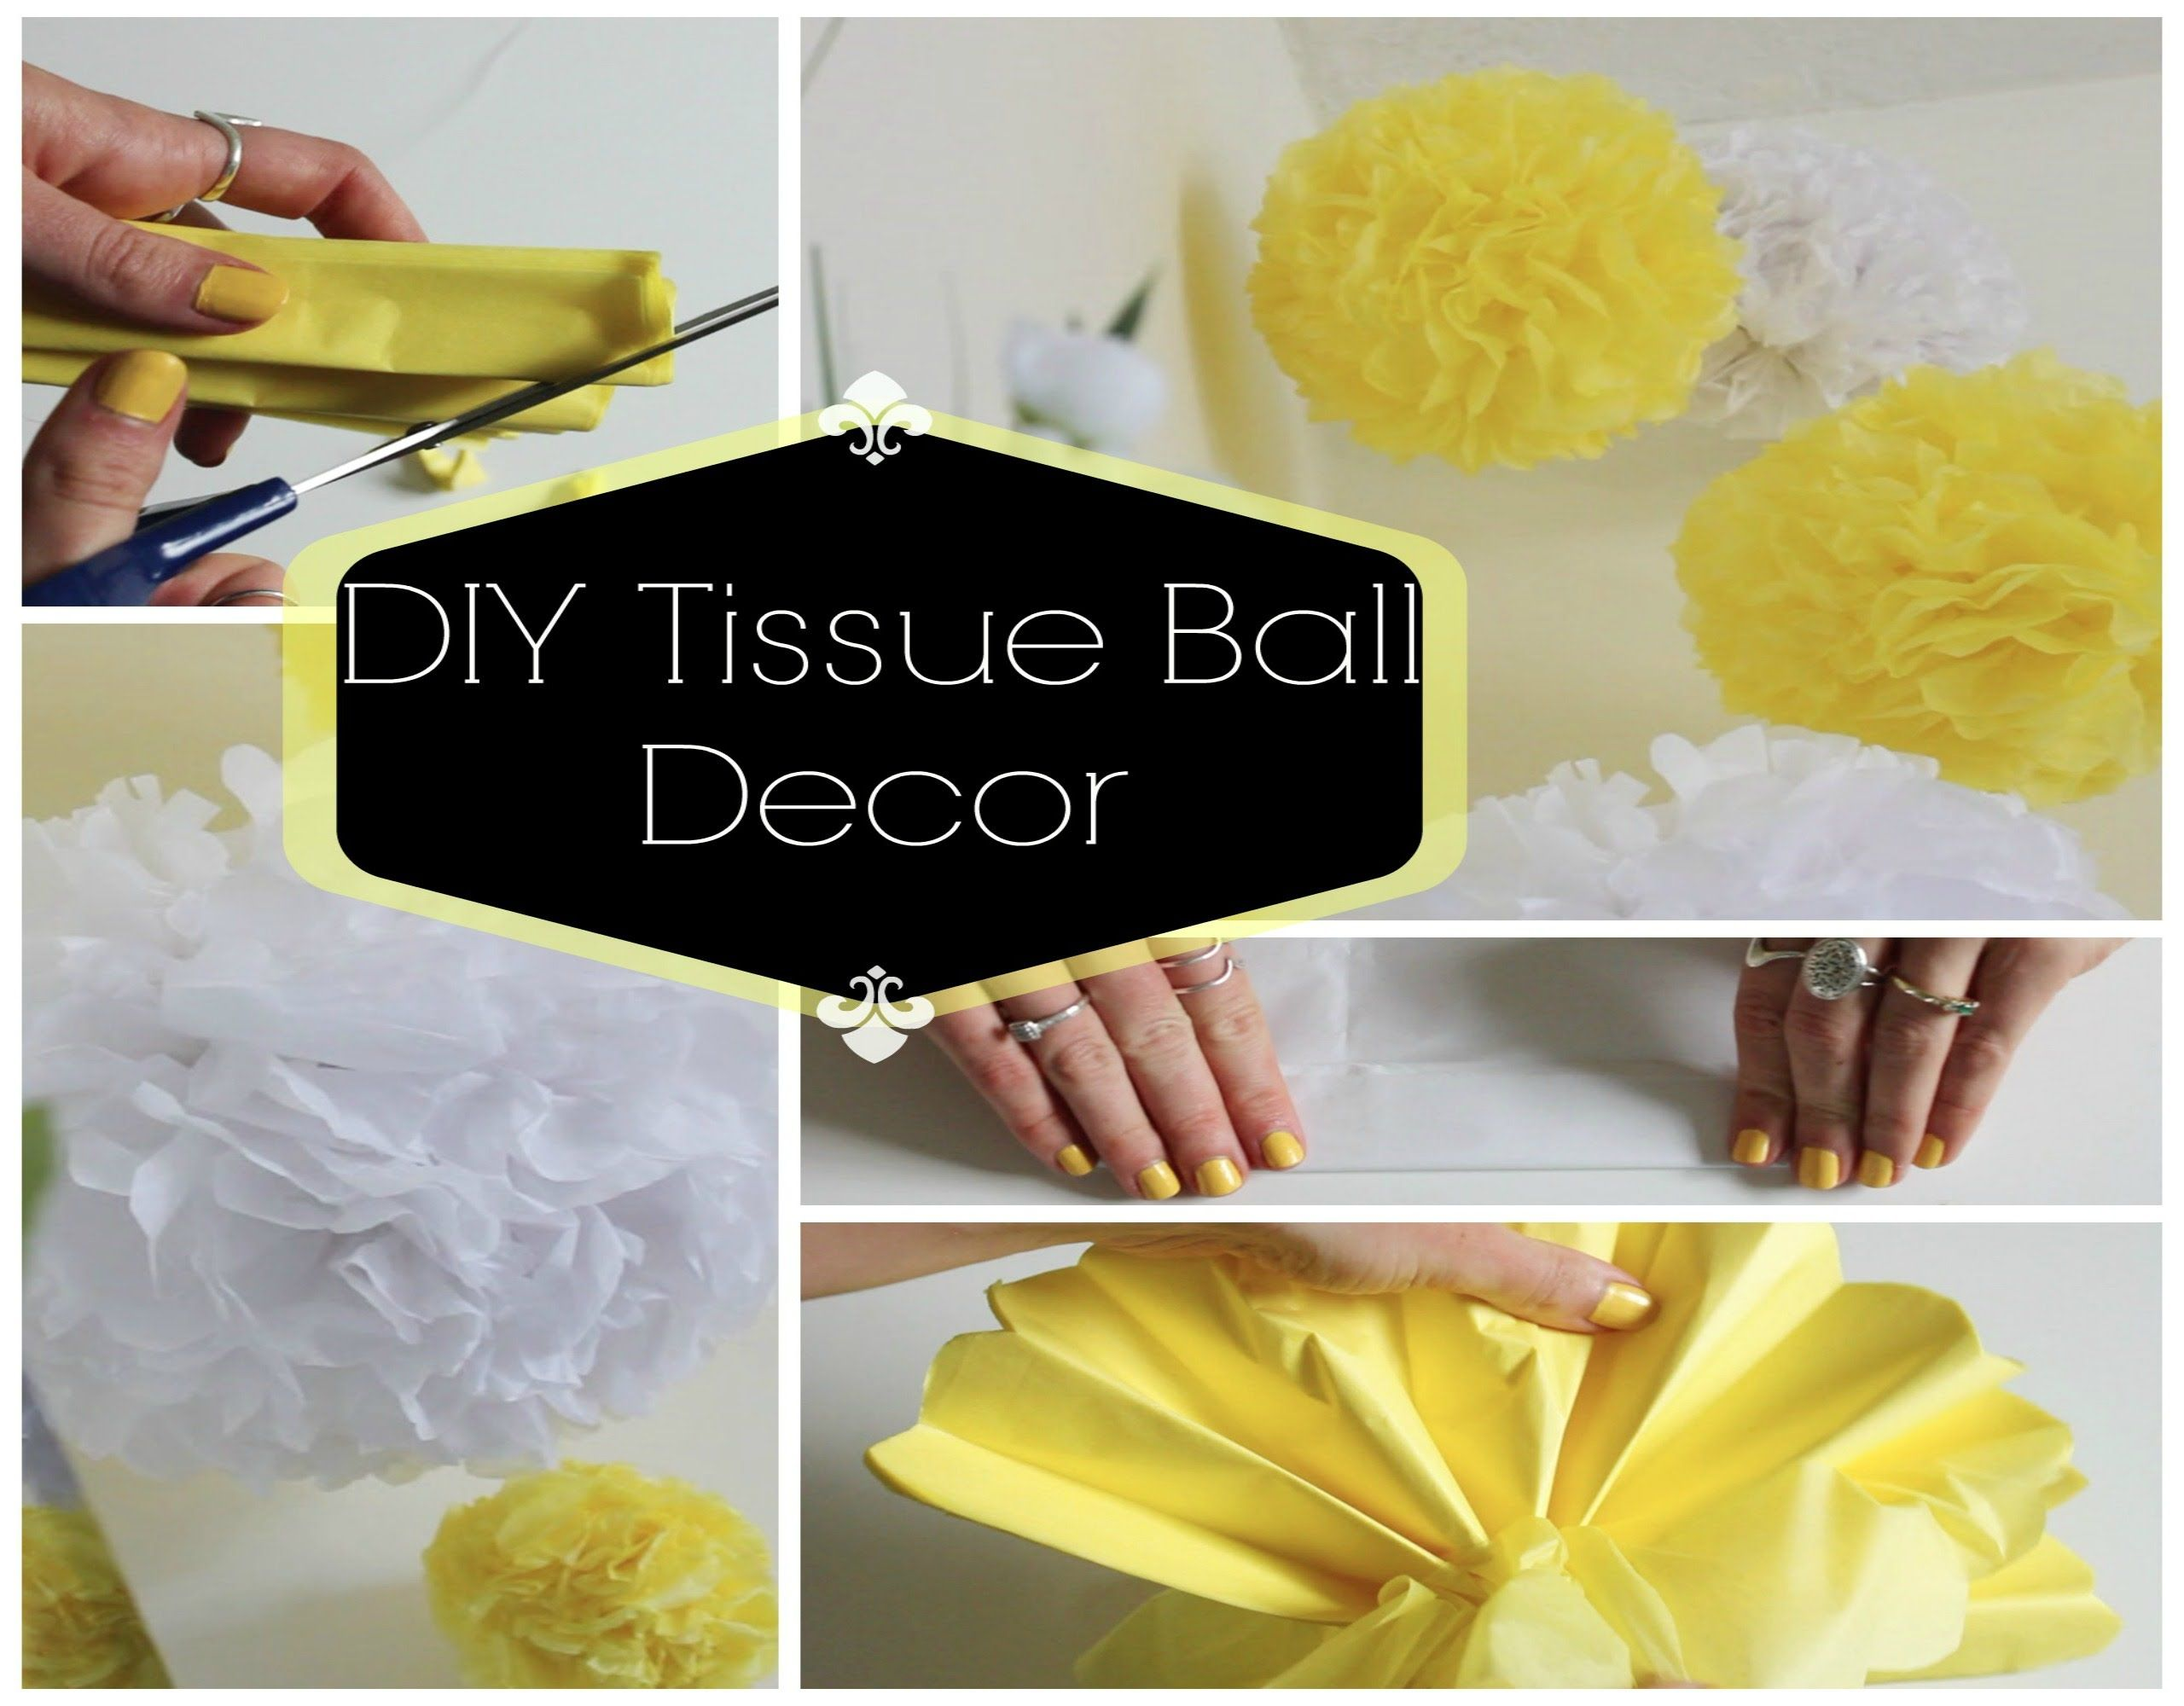 How To Make Paper Balls For Decoration Diy Room Decor  Easy Tissue Paper Ballso Cute  Share Your